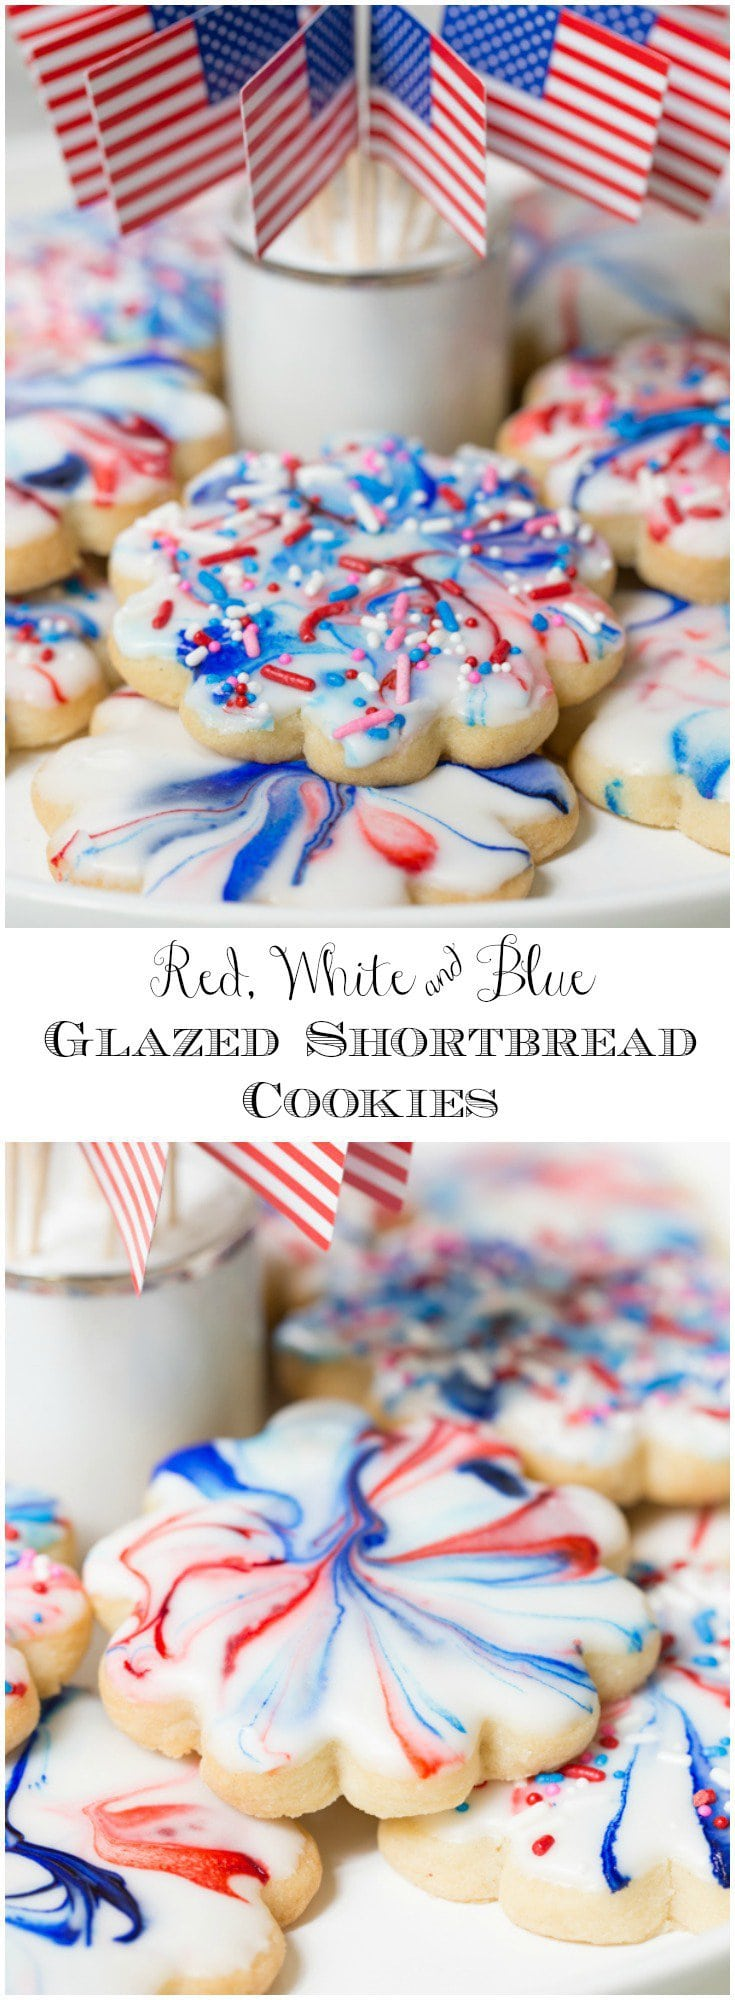 These festive, Red, White and Blue Glazed Shortbread Cookies are not only easy, the decorating technique is also very simple.